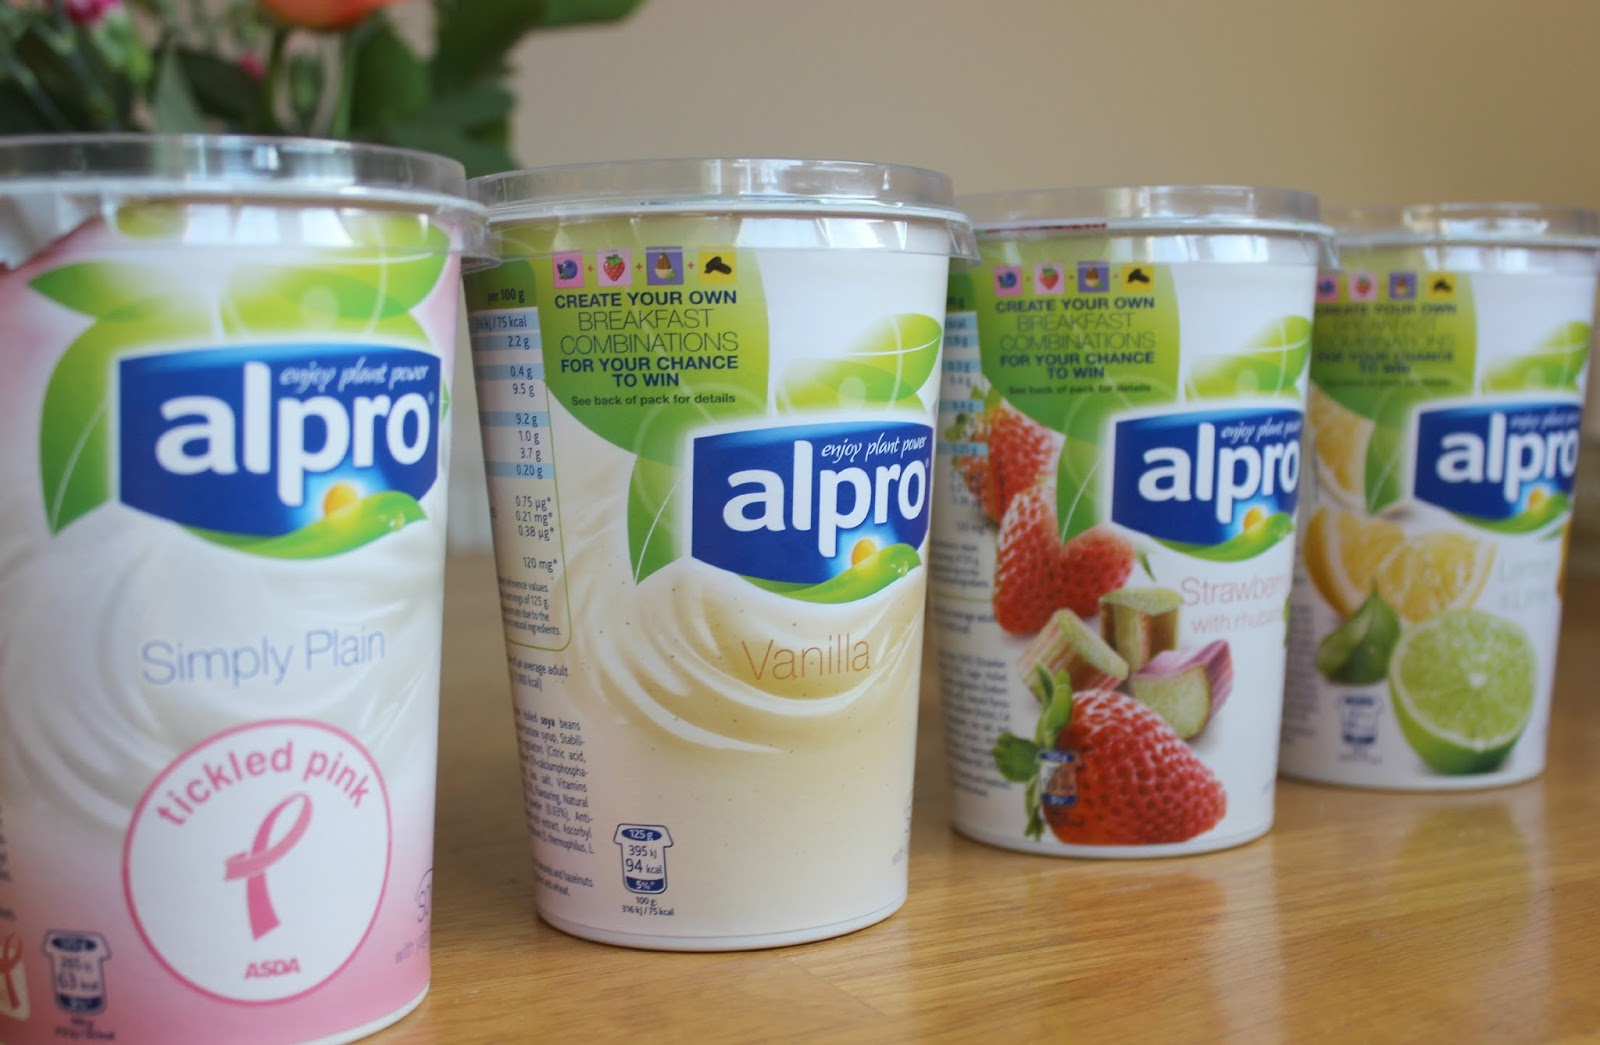 A healthy start with #Alprotops